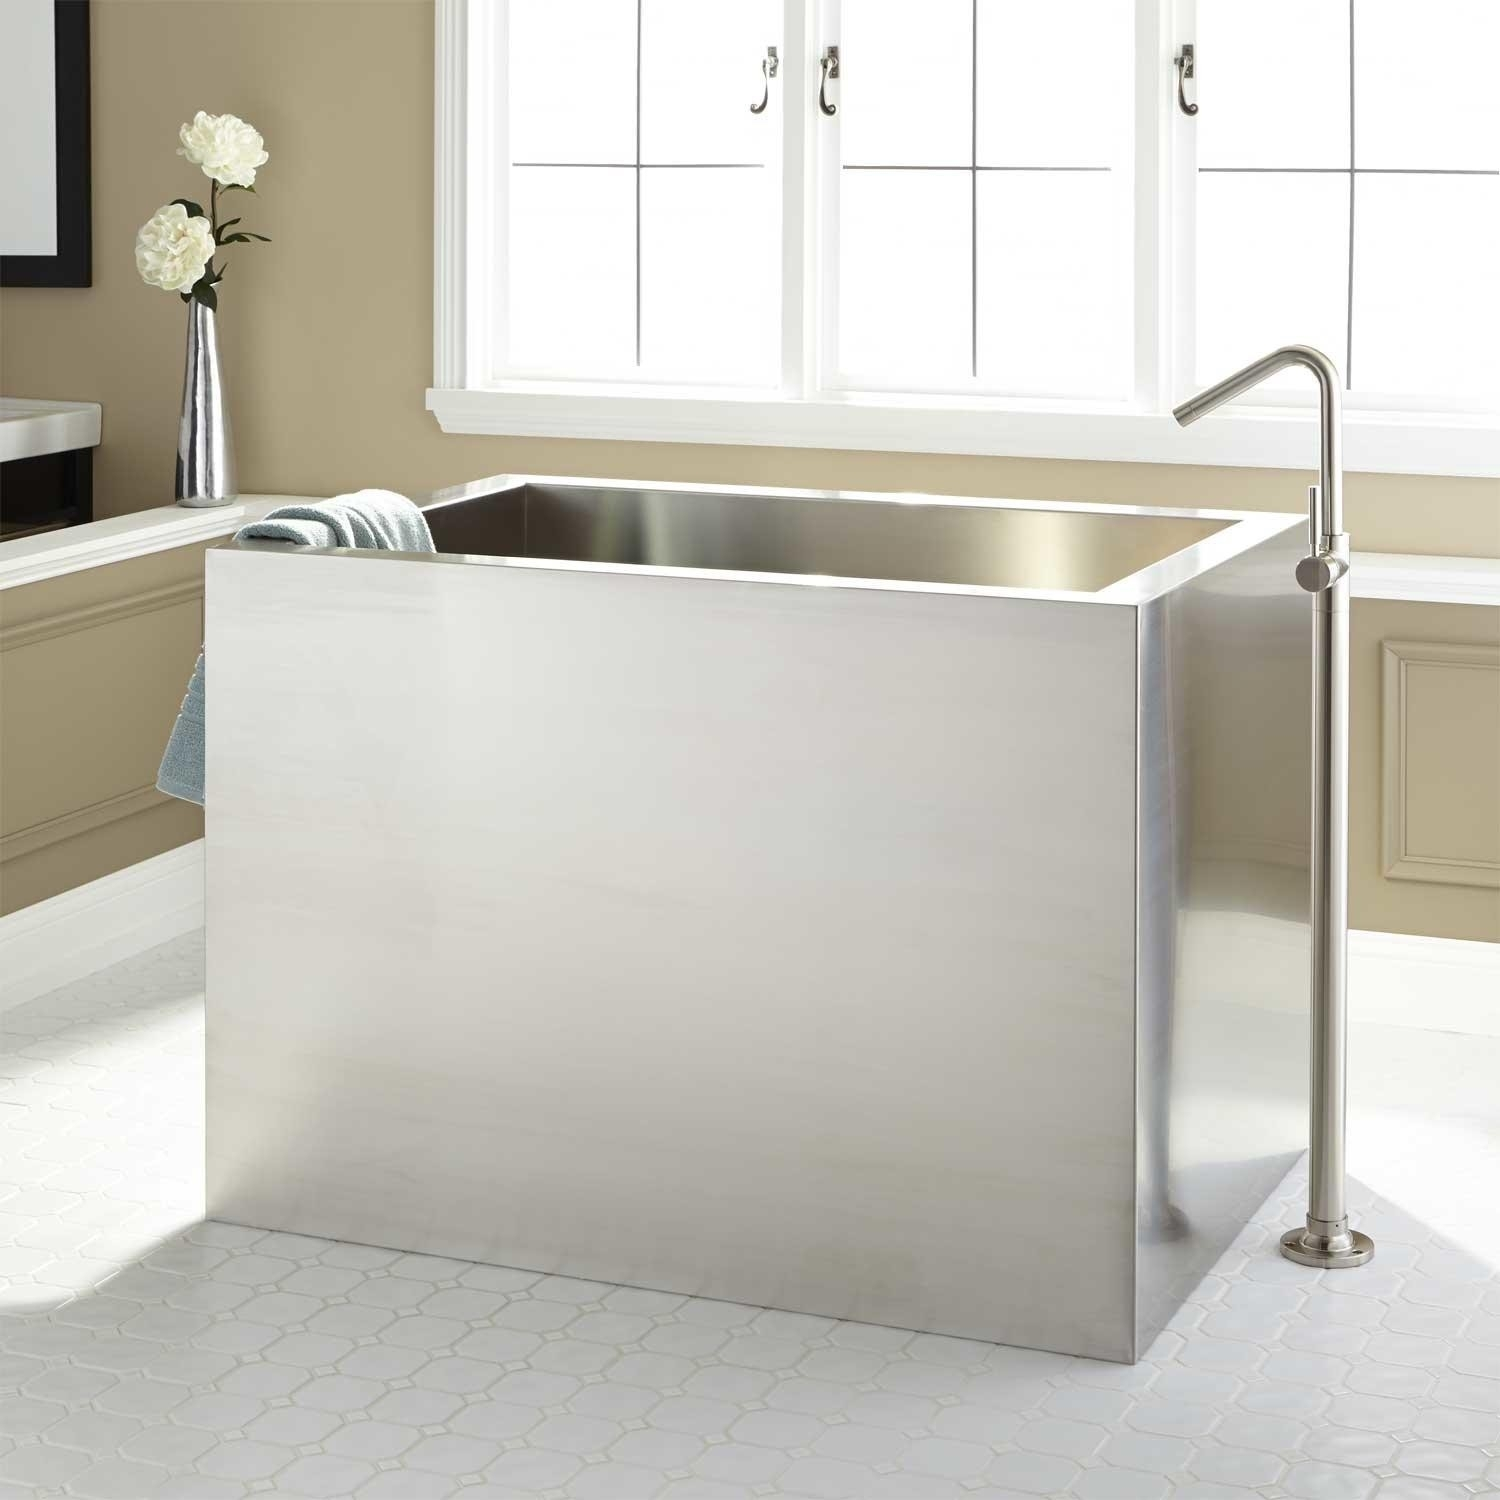 Japanese Style Soaker Tub With Heater And Filter Randolph